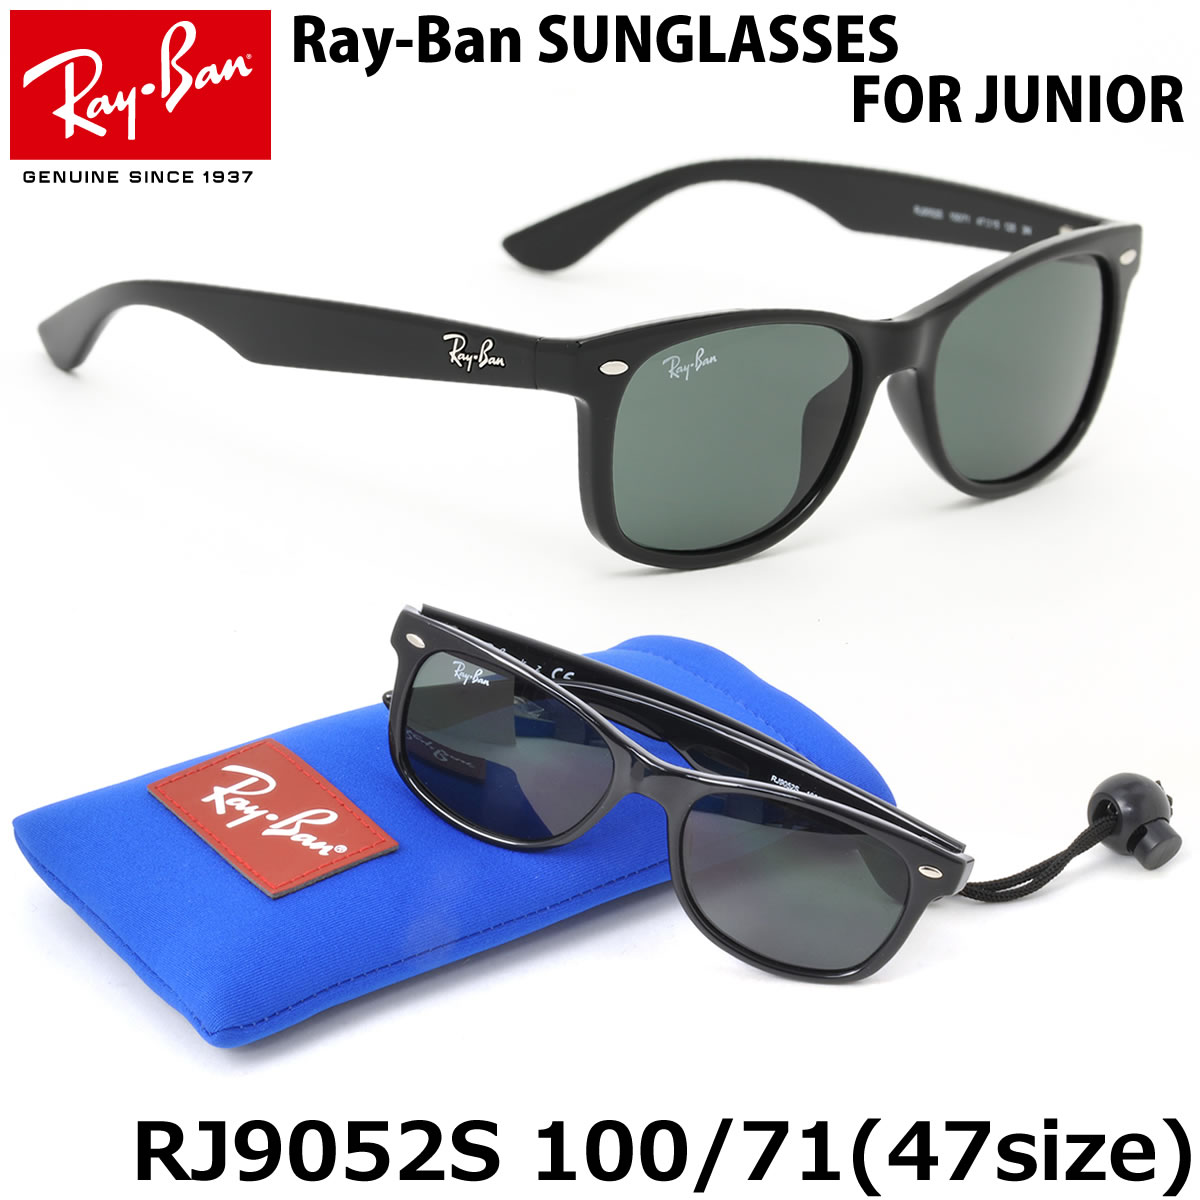 6e37f3a3404bc1 NEW WAYFARER JUNIOR RJ9052S Youth specifications come up from extreme  popularity Ray-Ban sunglasses! If I wear matching Ray-Ban sunglasses in  parent and ...